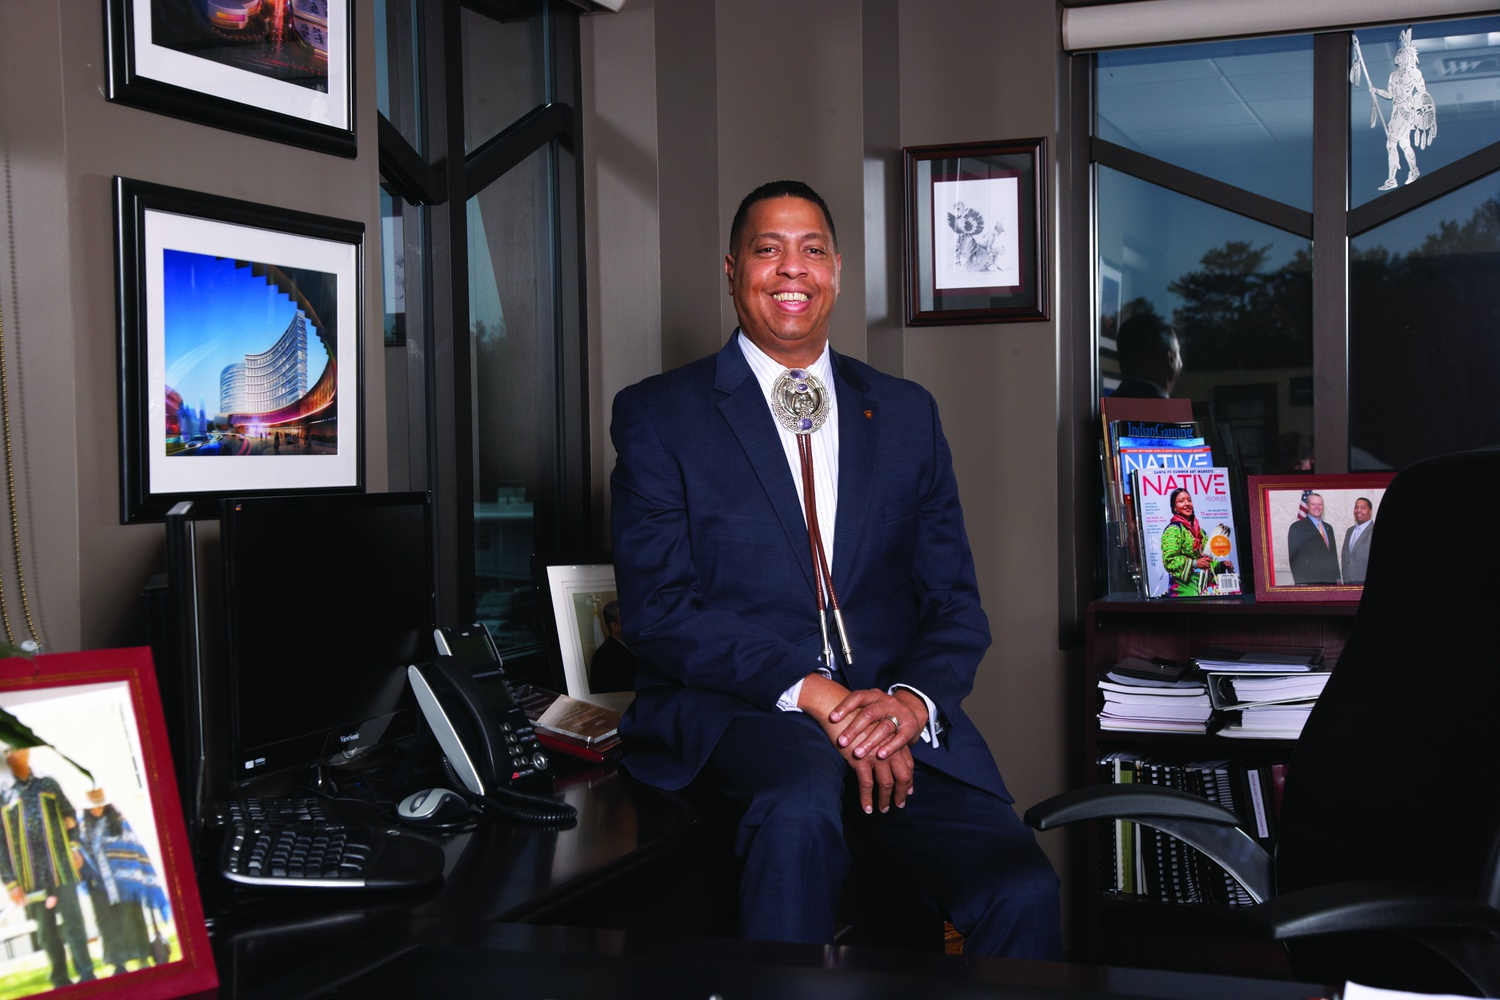 Cedric D. Cromwell serves as president and chairman of the Mashpee Wampanoag Tribe.